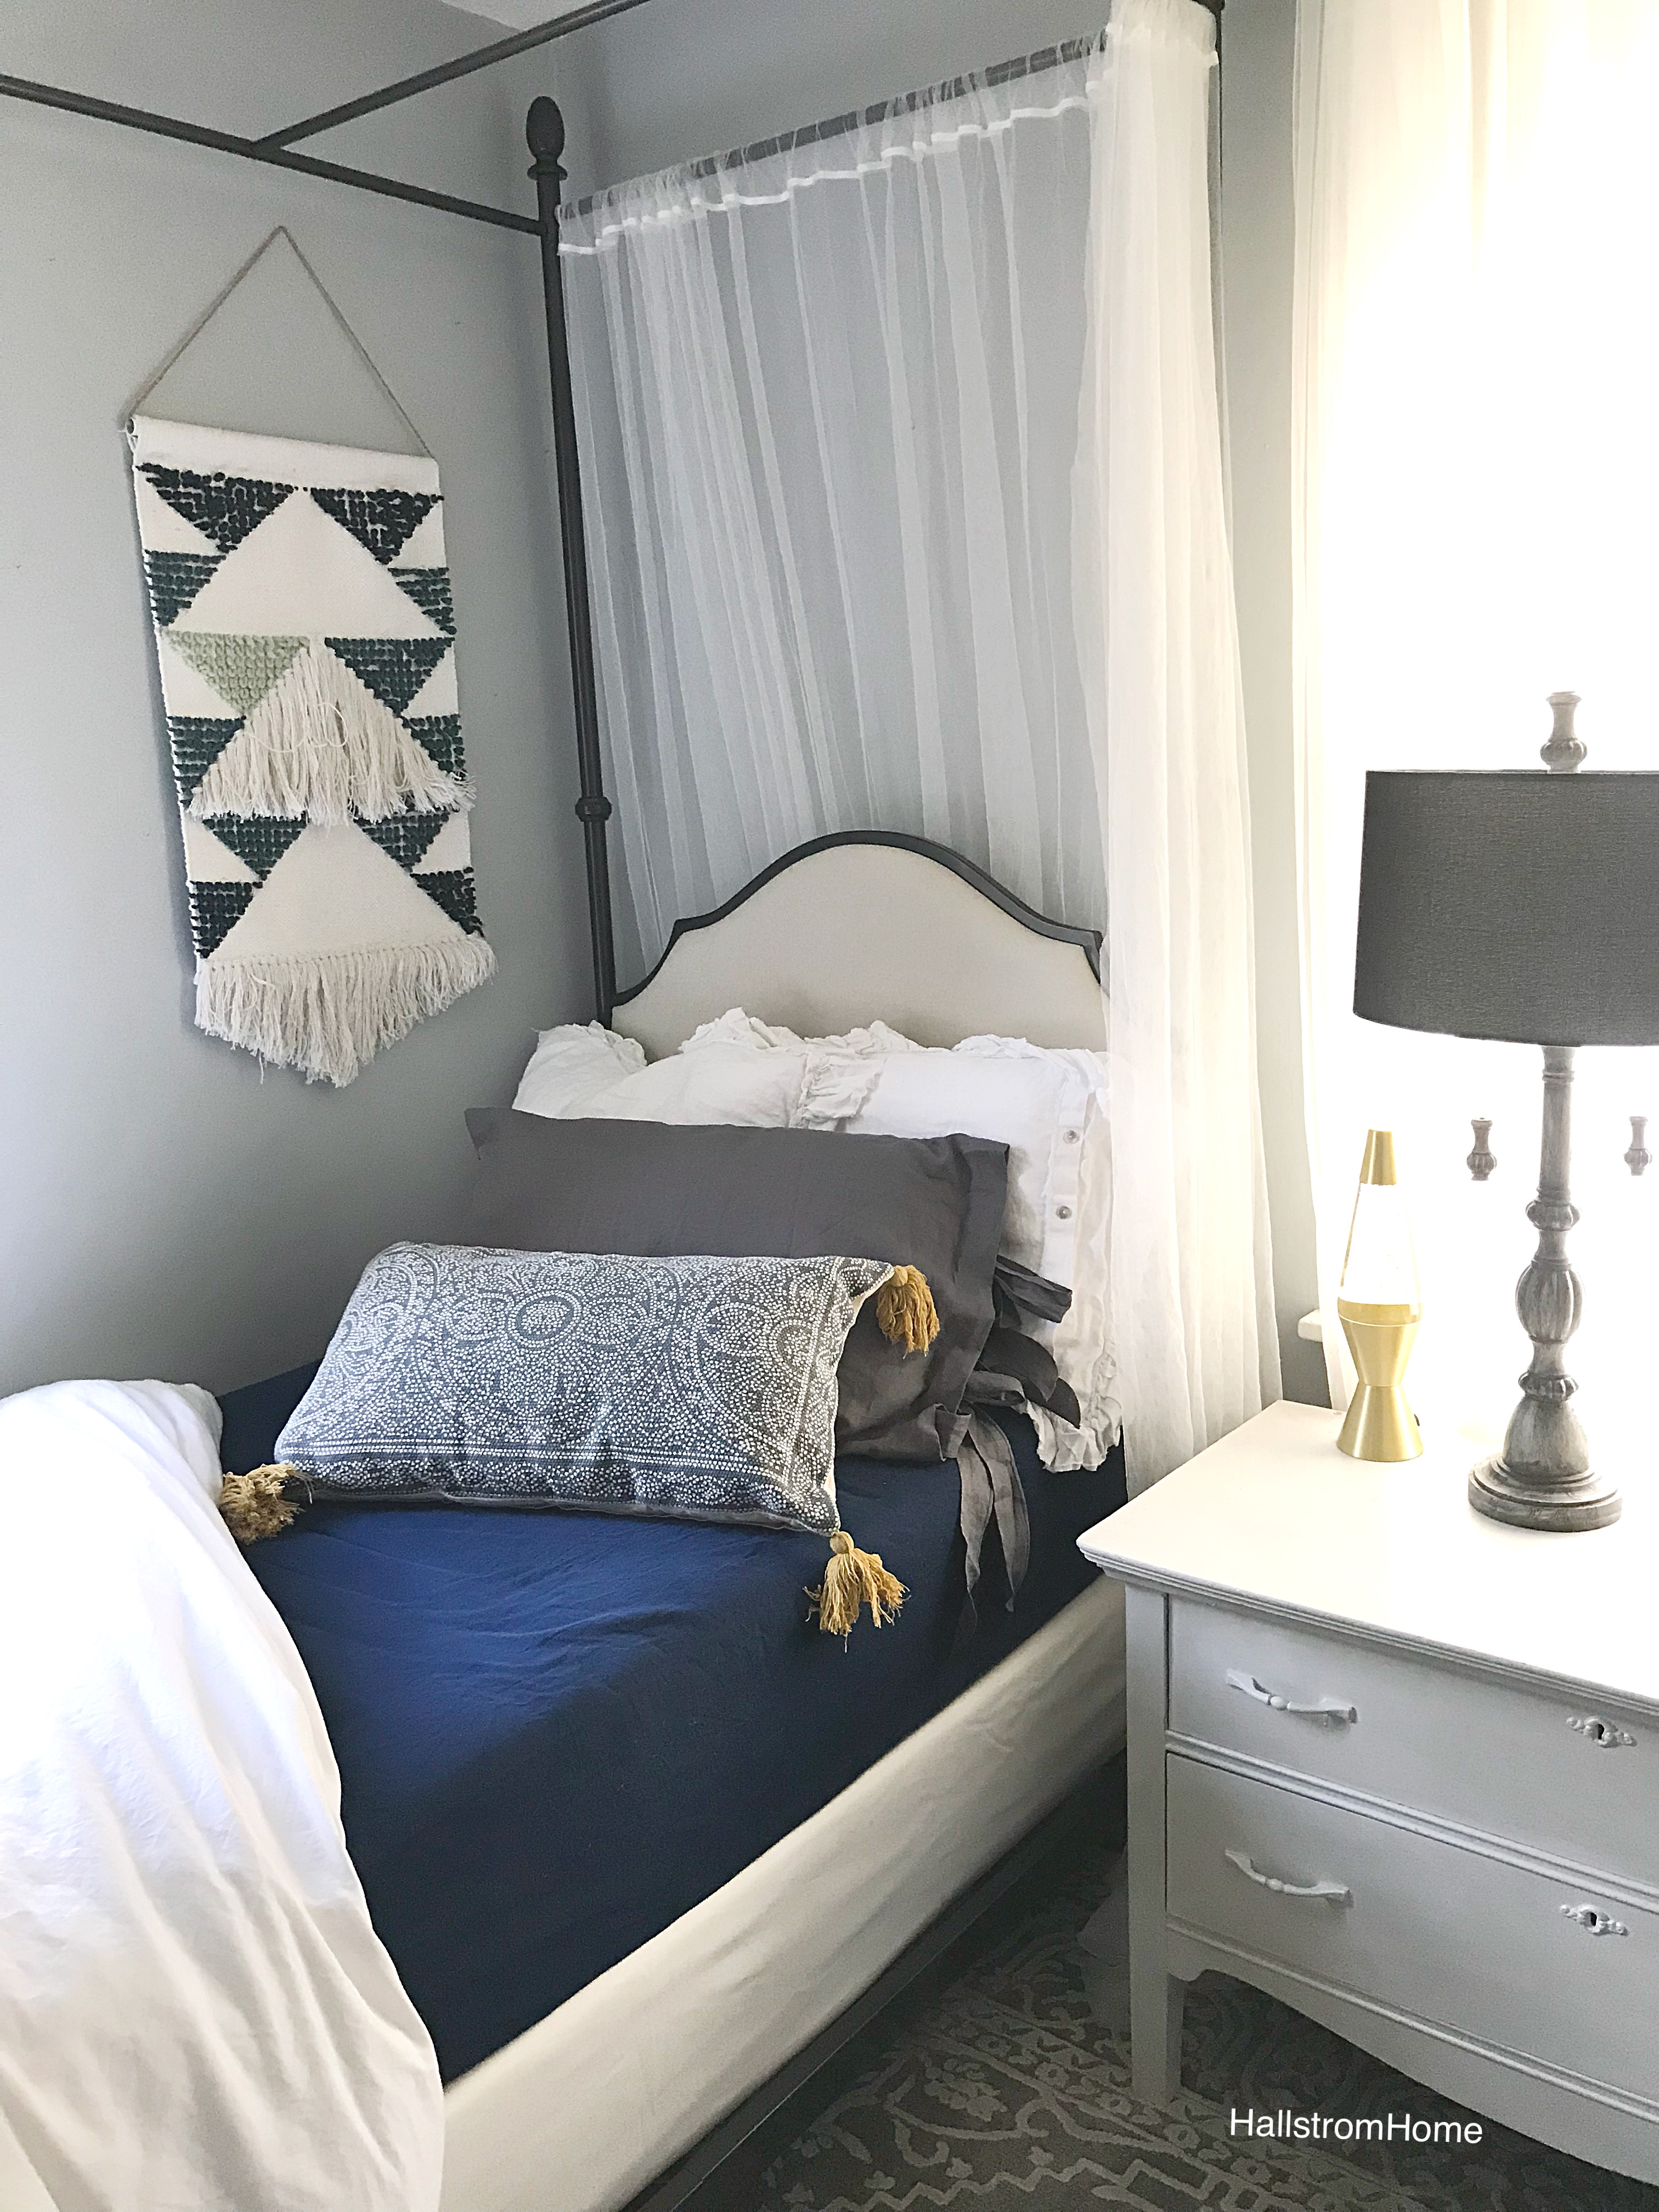 New Bedroom Look For The New Year|bedroom update|bedroom reveal|simple bedroom decorating ideas|simple bedroom|bed canopy|girls bedroom reveal|new year update|farmhouse bedroom|white farmhouse|shabby chic|shabby chic farmhouse|kids bedroom|kids bedroom update|how to update girls bedroom|hallstrom home